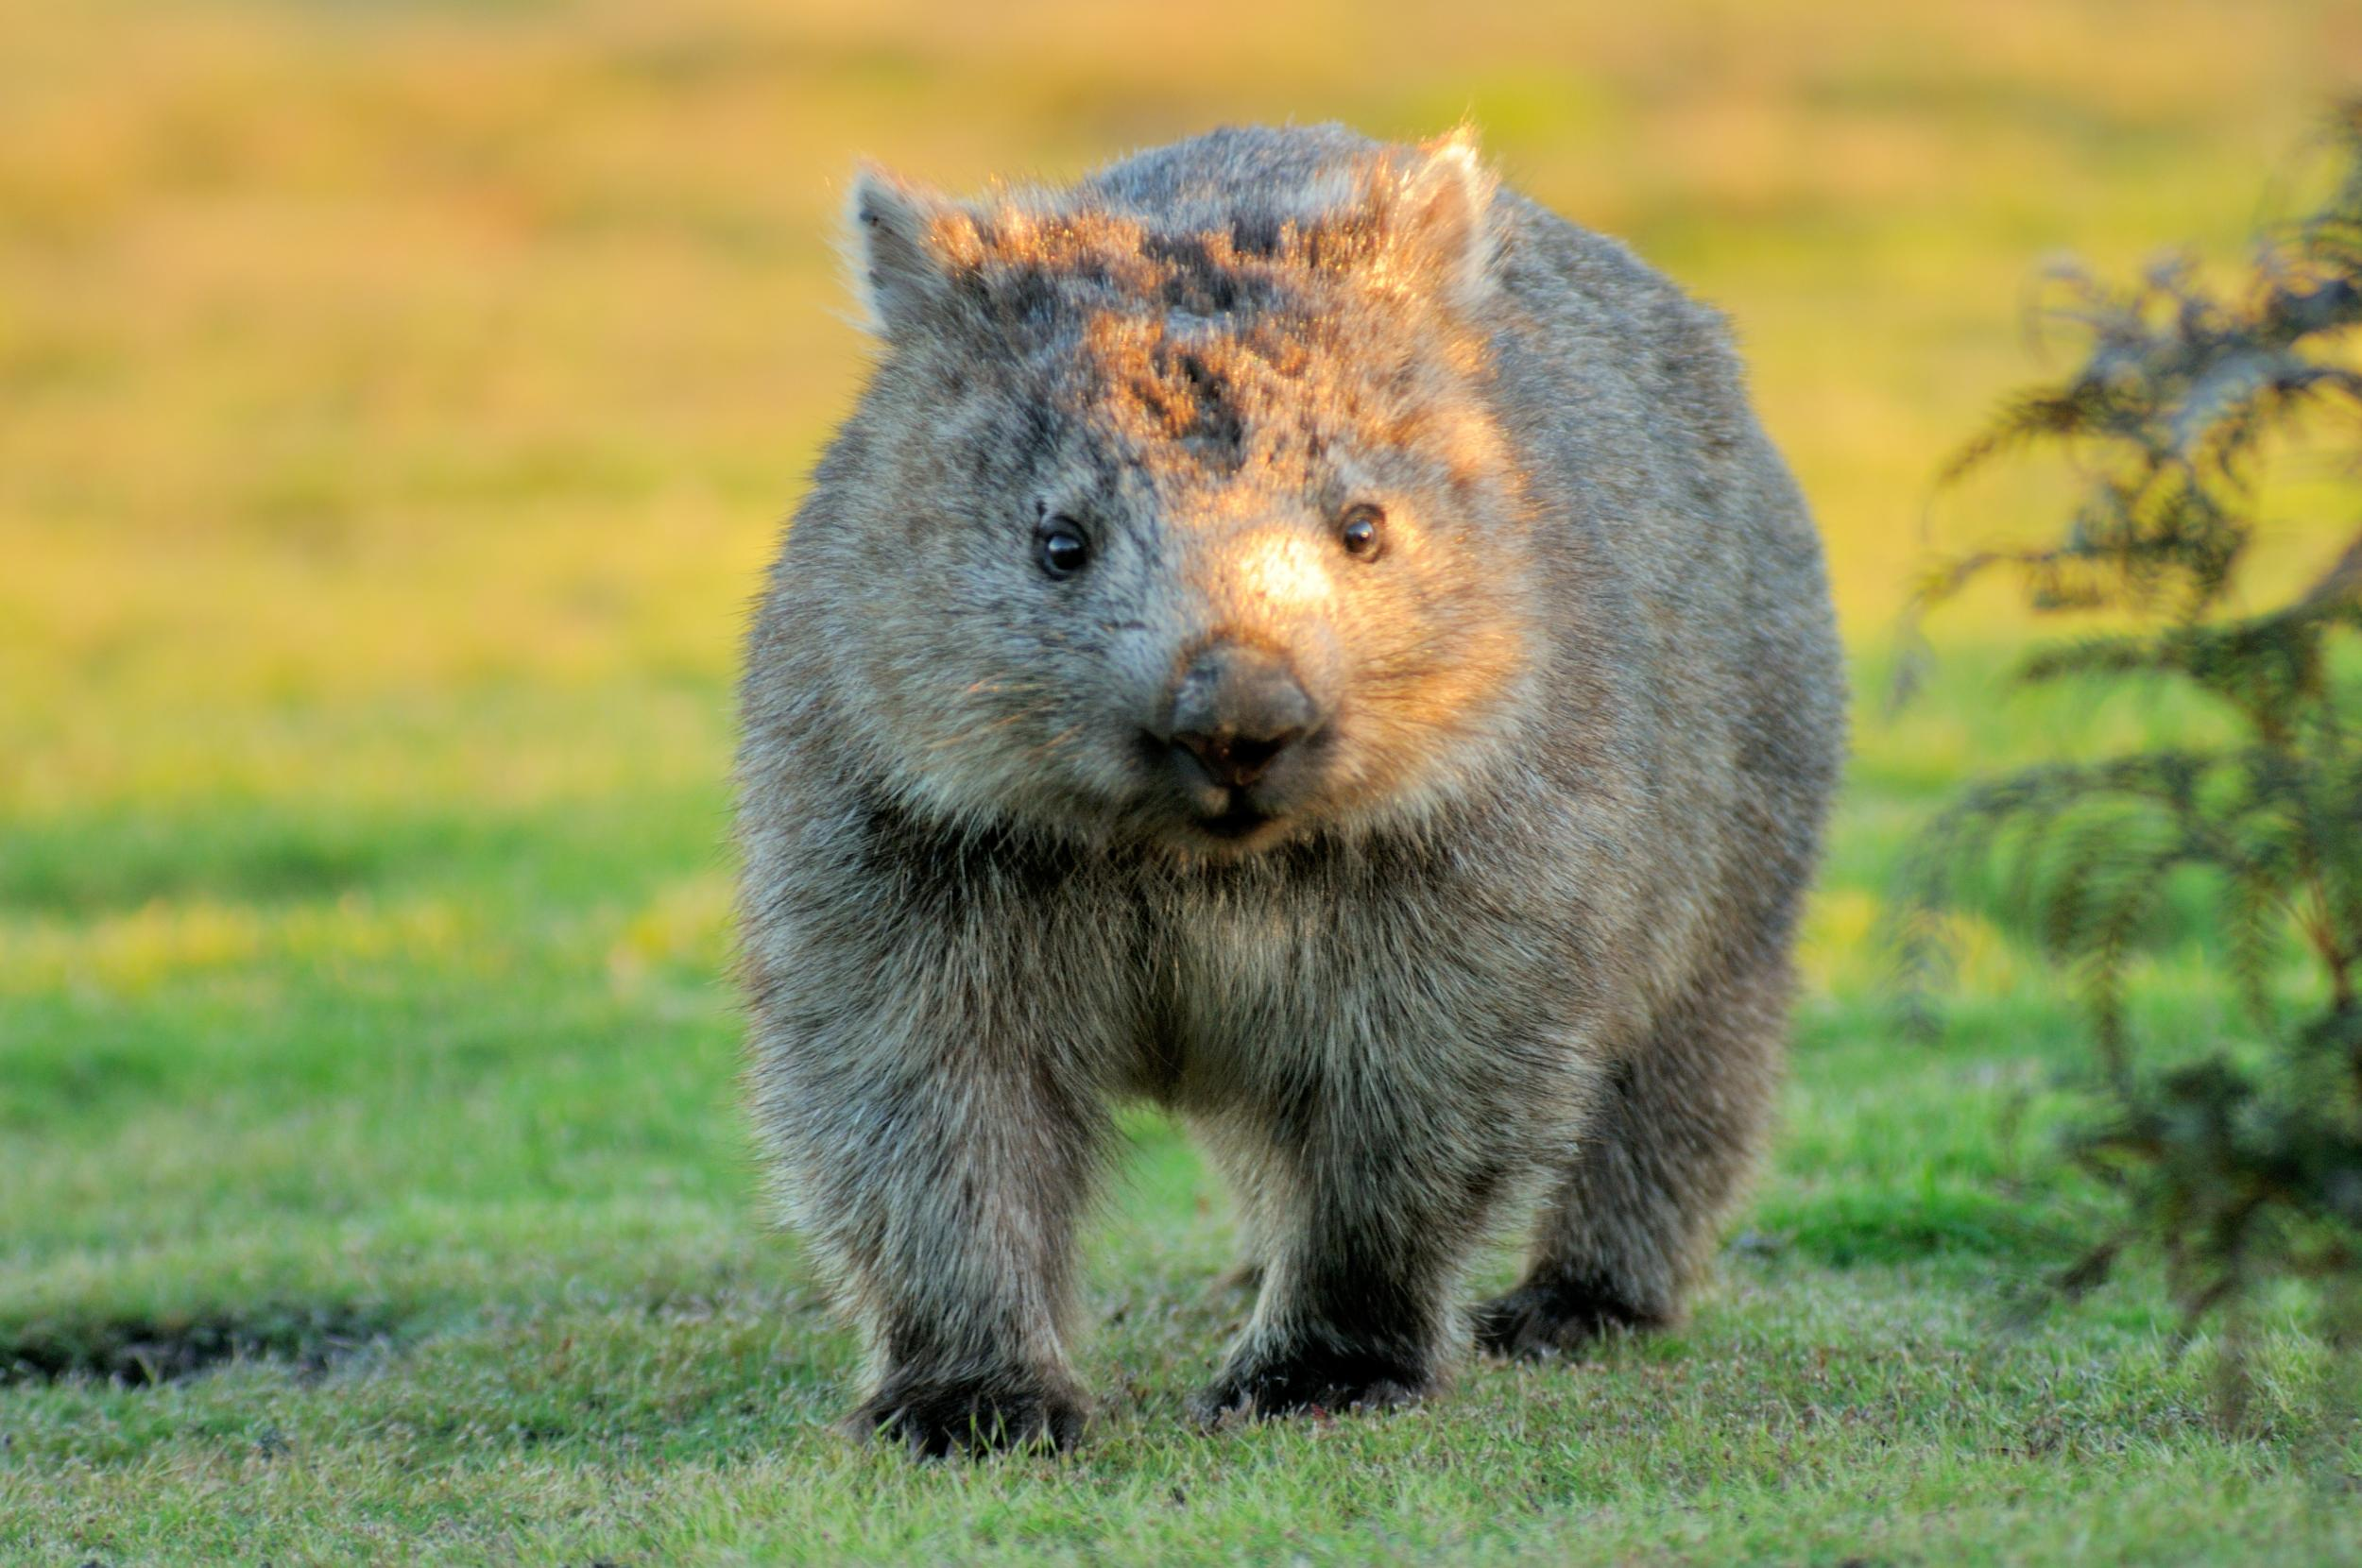 Tourists urged to stop taking selfies with wombats on remote Tasmanian island